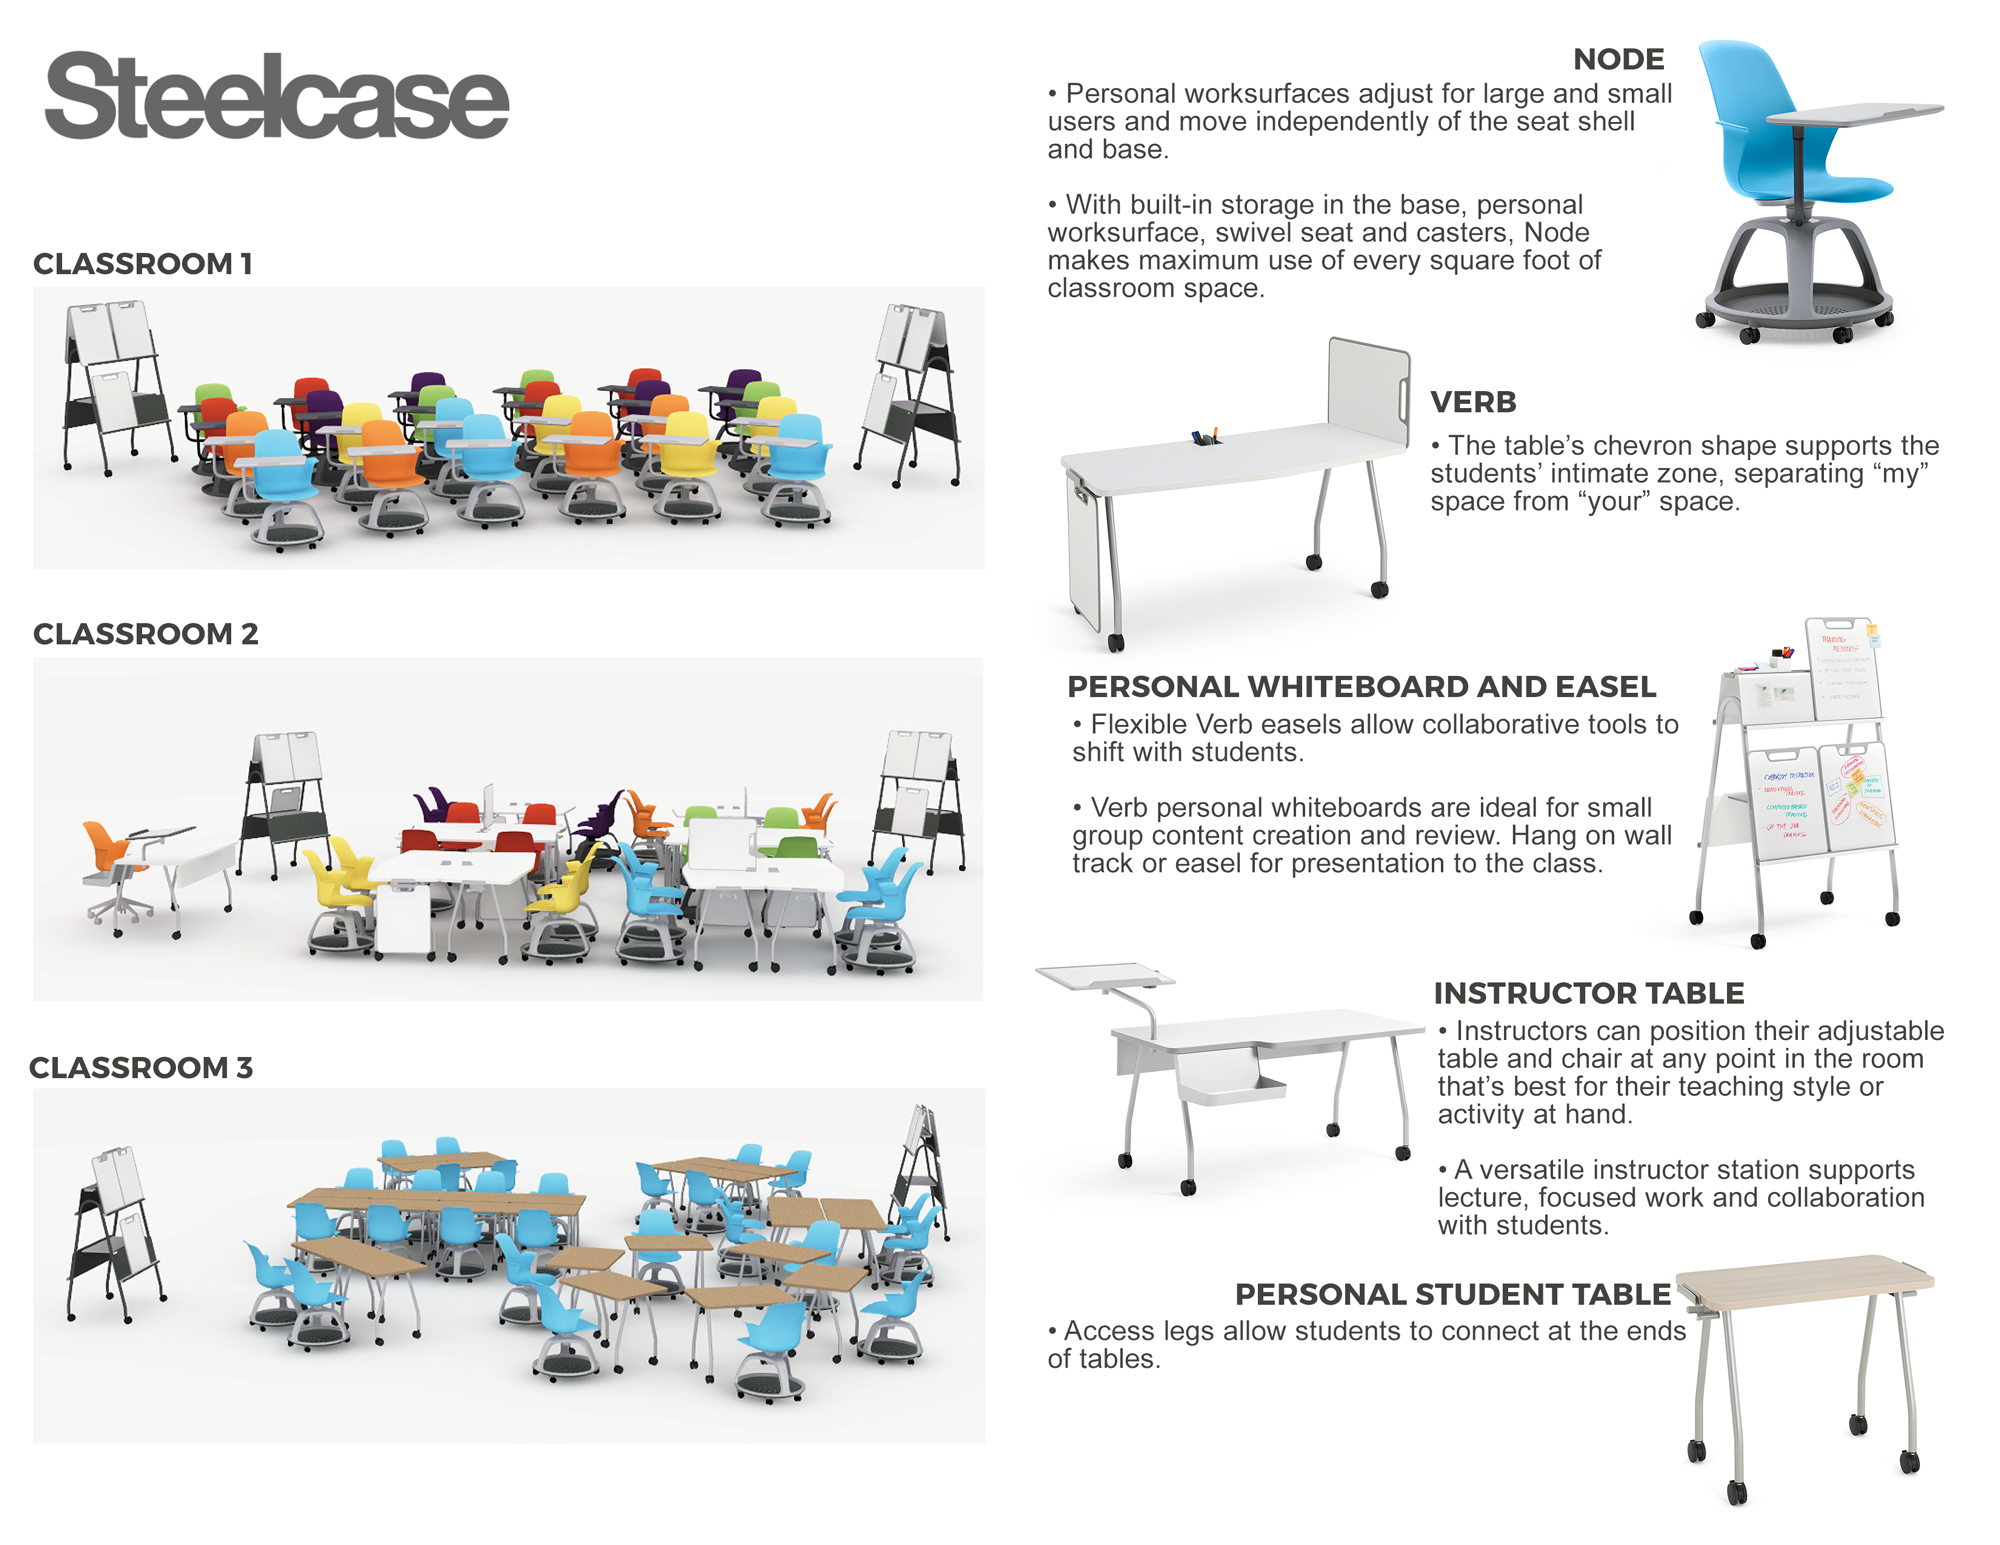 Personal Space Diagram Sbi Education Sheppards Business Interiors Steelcase Classrooms